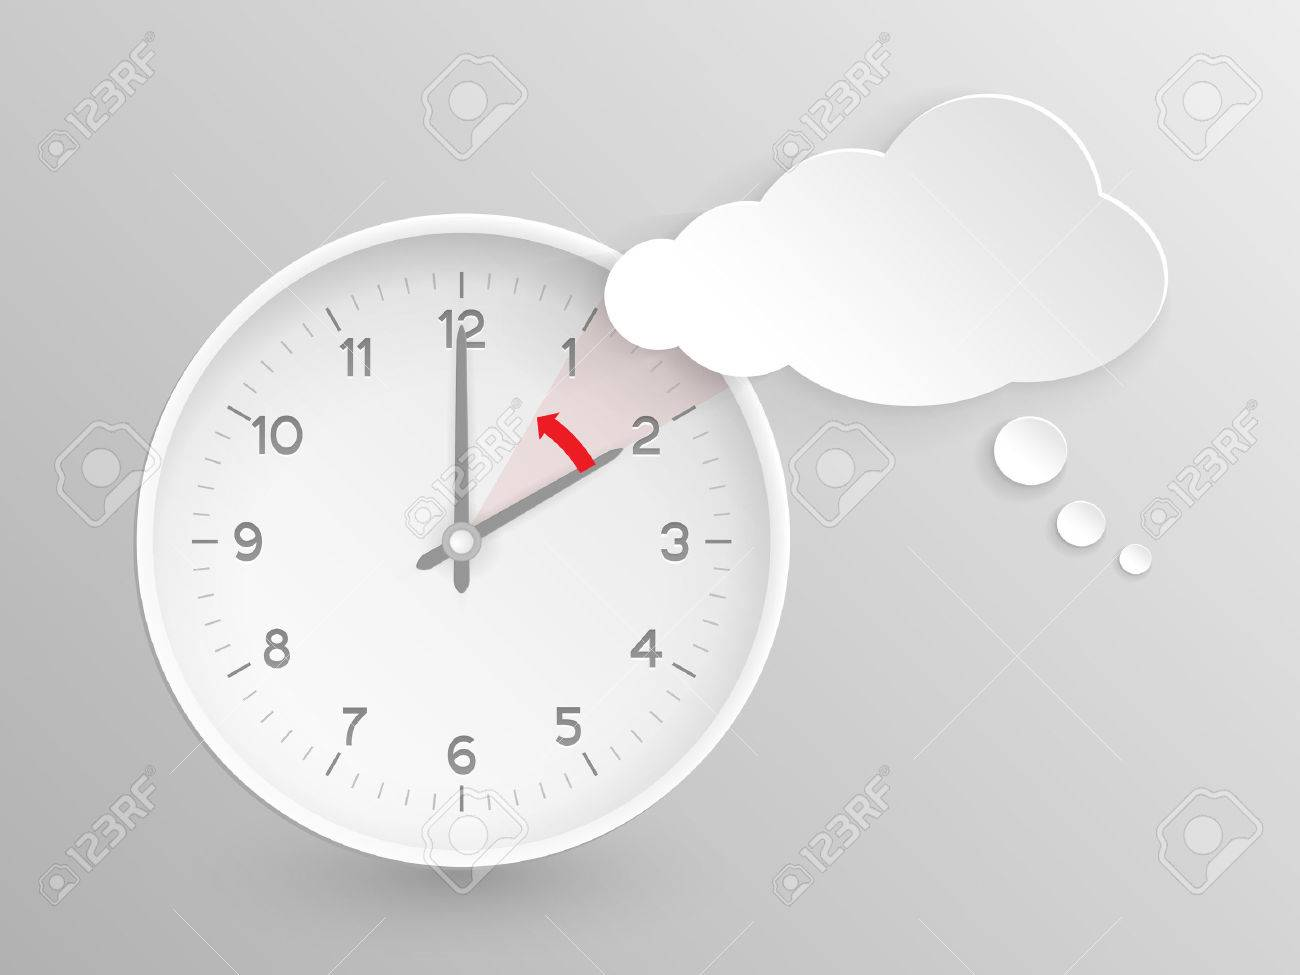 Cloud shaped speech bubble and vector clock with hands at 2 o'clock and an red arrow symbolizing the hour backward to 1 o'clock for the change of time in autumn, fall in America on silver background. - 31759525